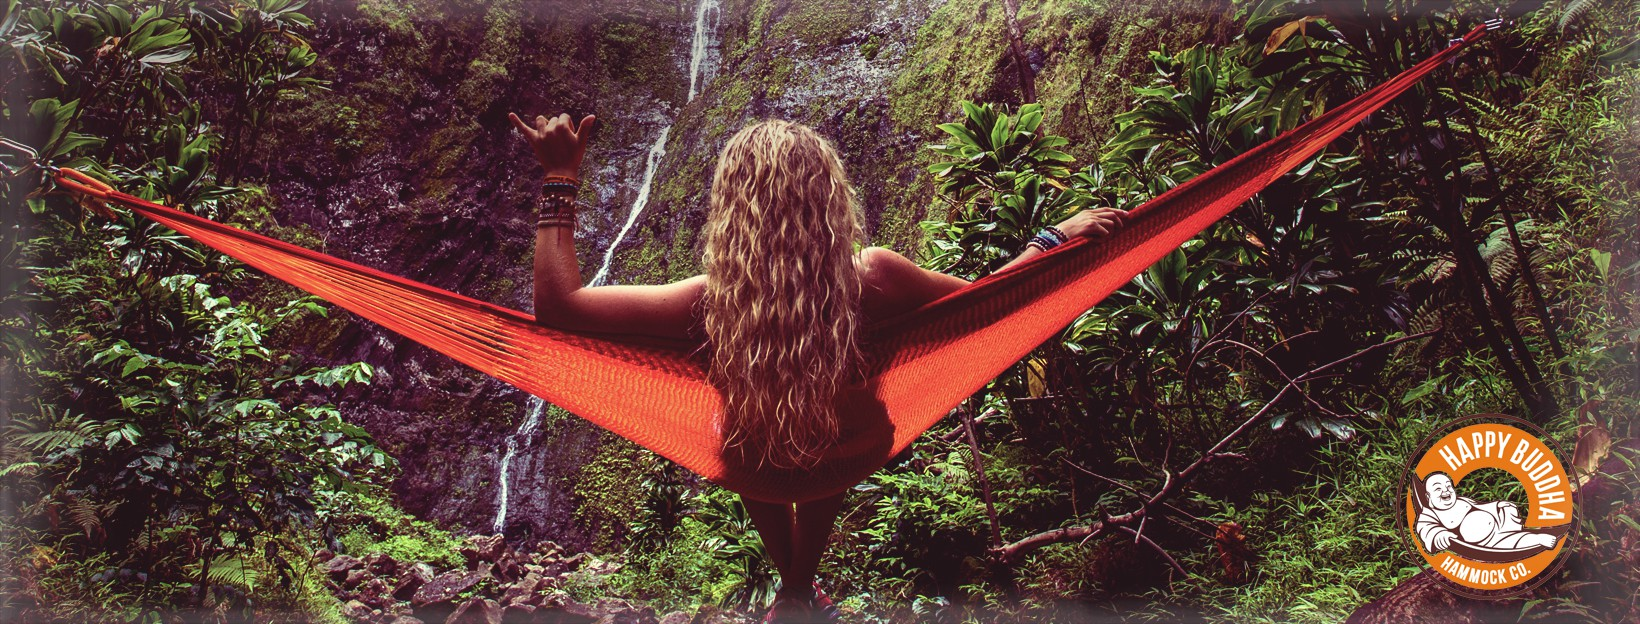 Design an FB cover for an awesome hammock company